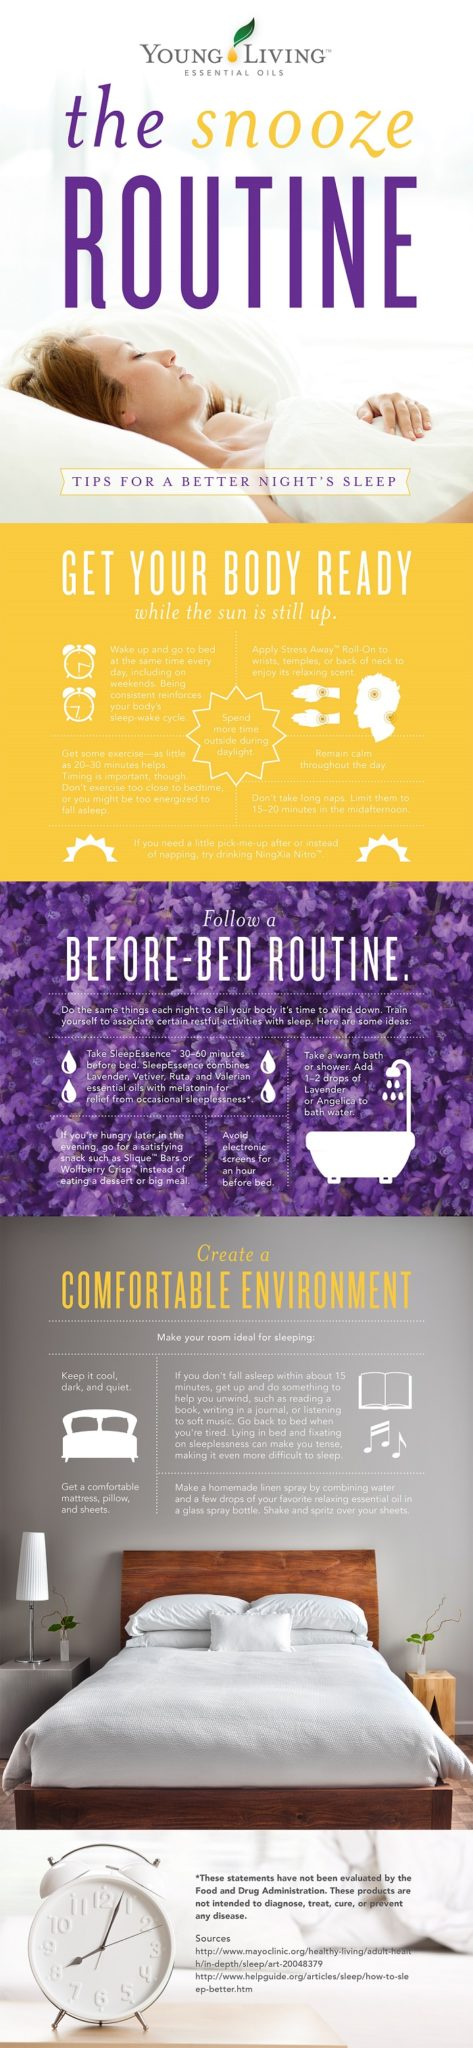 Get great sleep with Young Living Essential Oils